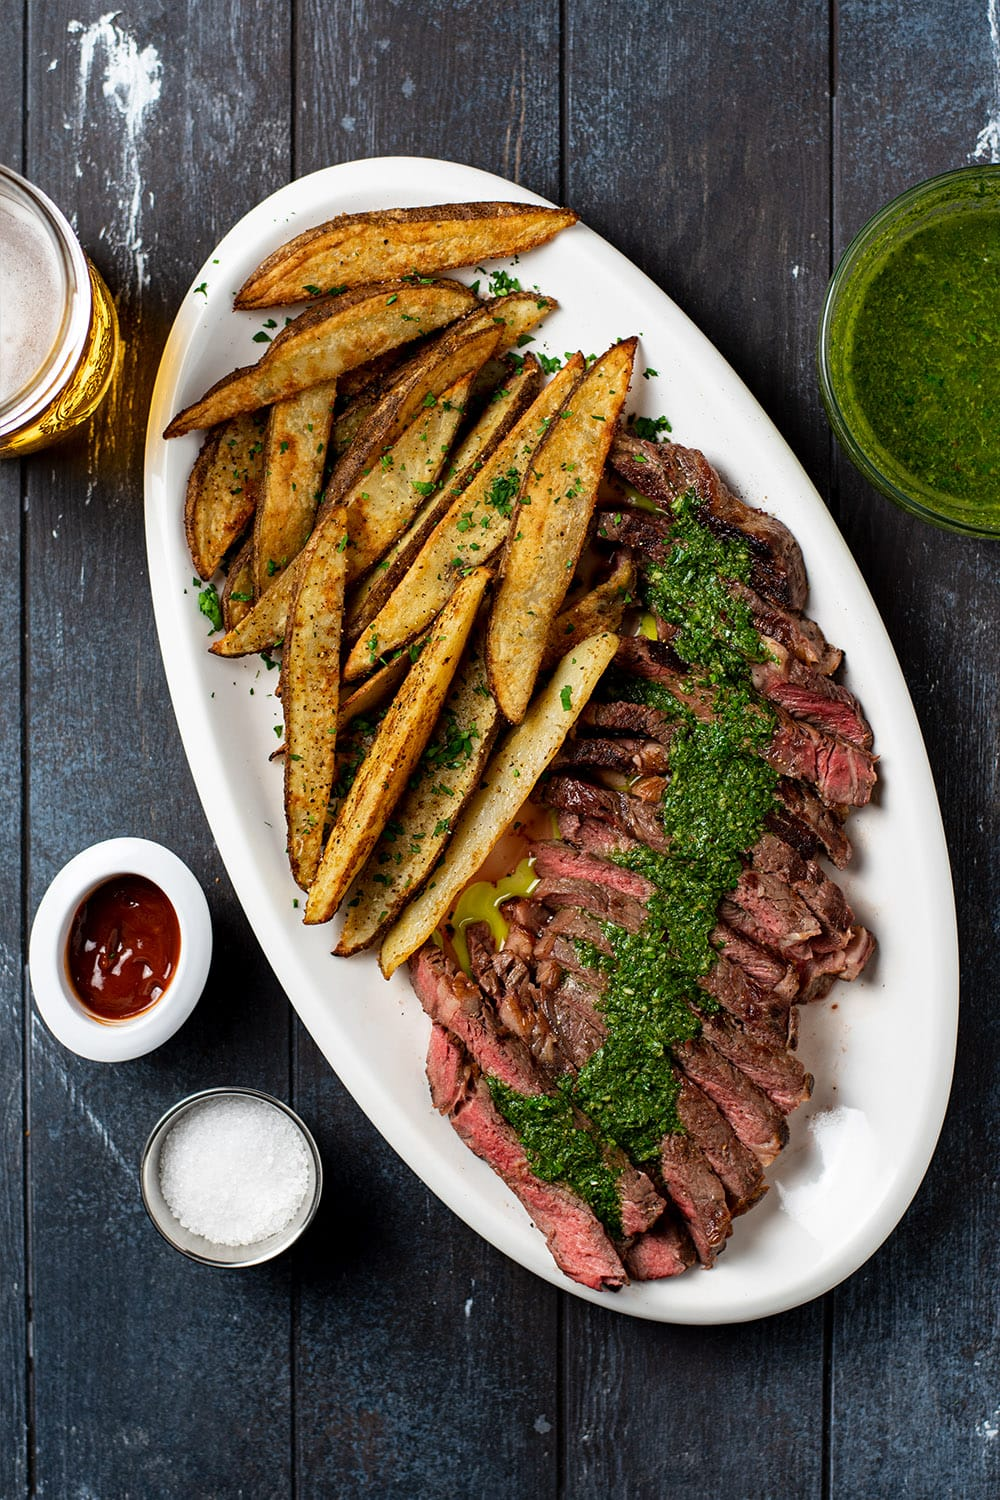 Steak Frites with Chimichurri Sauce Recipe